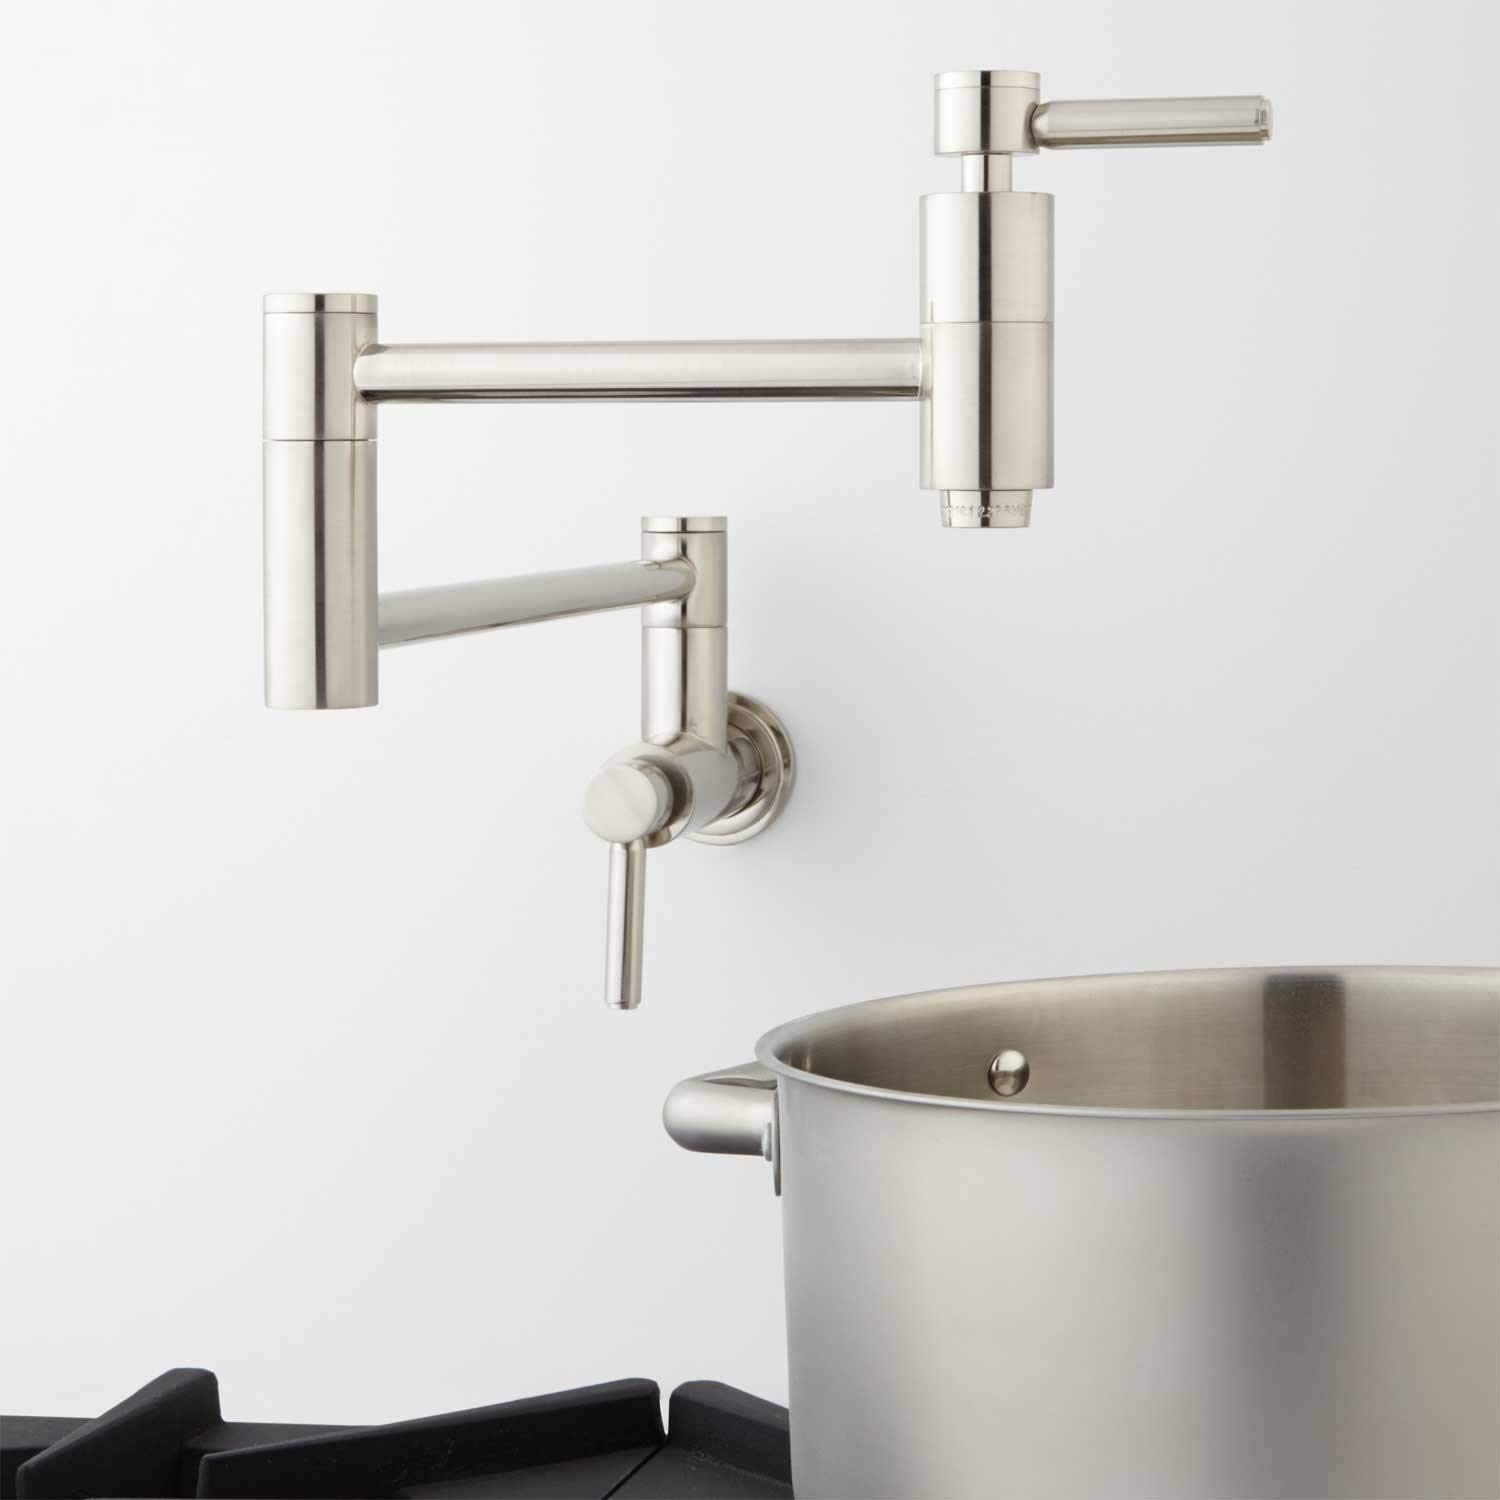 Signature Hardware 329627 Contemporary Double Handle Wall Mounted Pot Filler